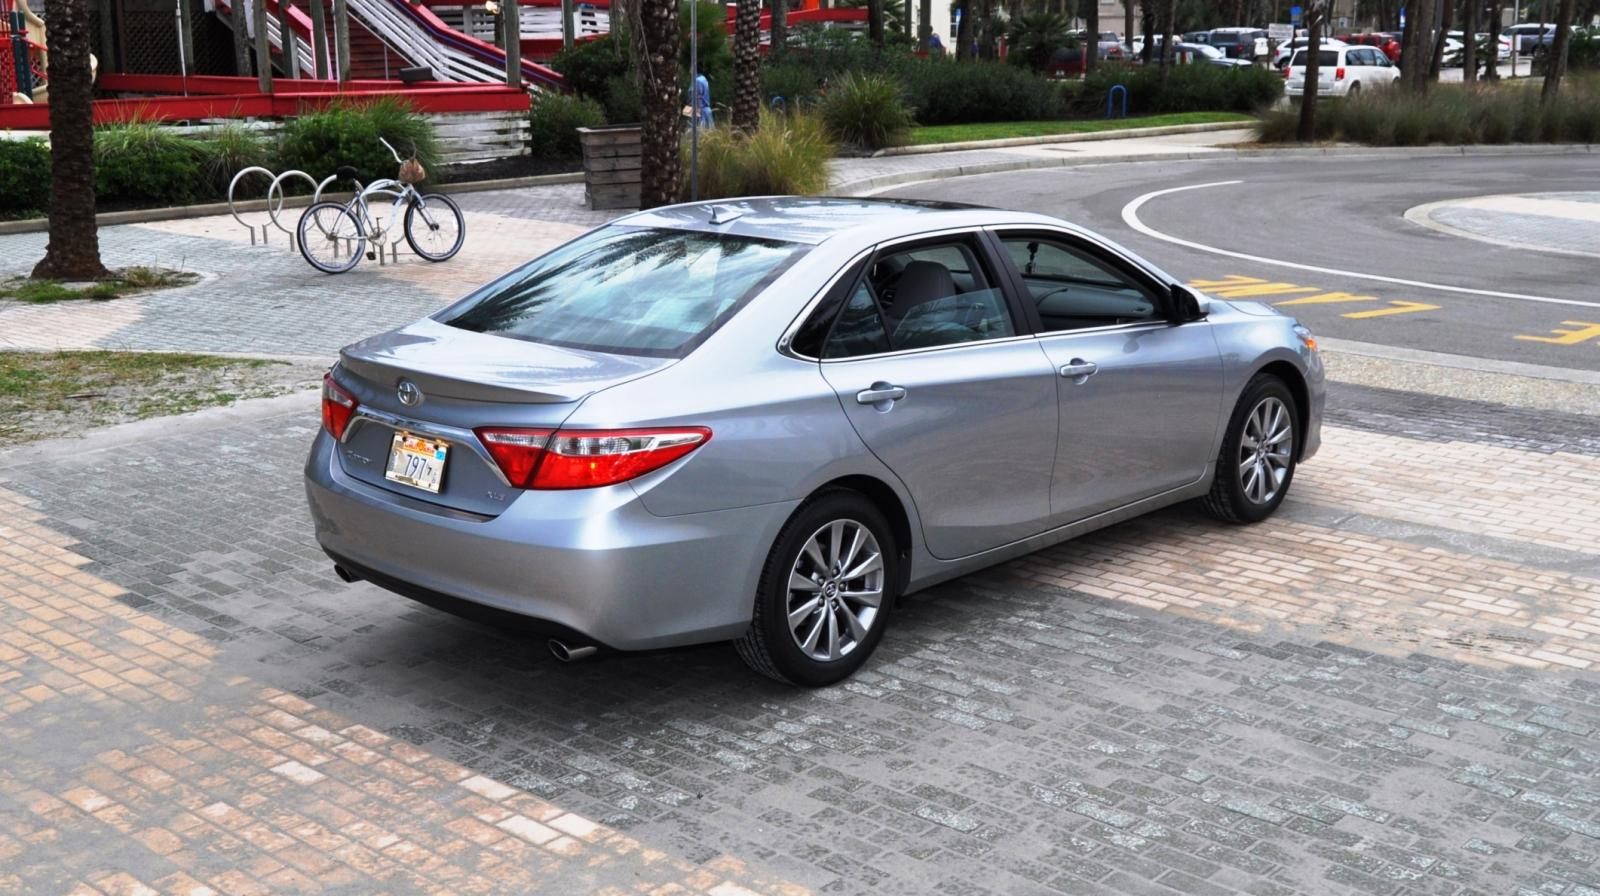 toyota camry xle v6 best 2015 toyota camry xle v6 you can buy 2008 toyota camry xle v6 toyota. Black Bedroom Furniture Sets. Home Design Ideas